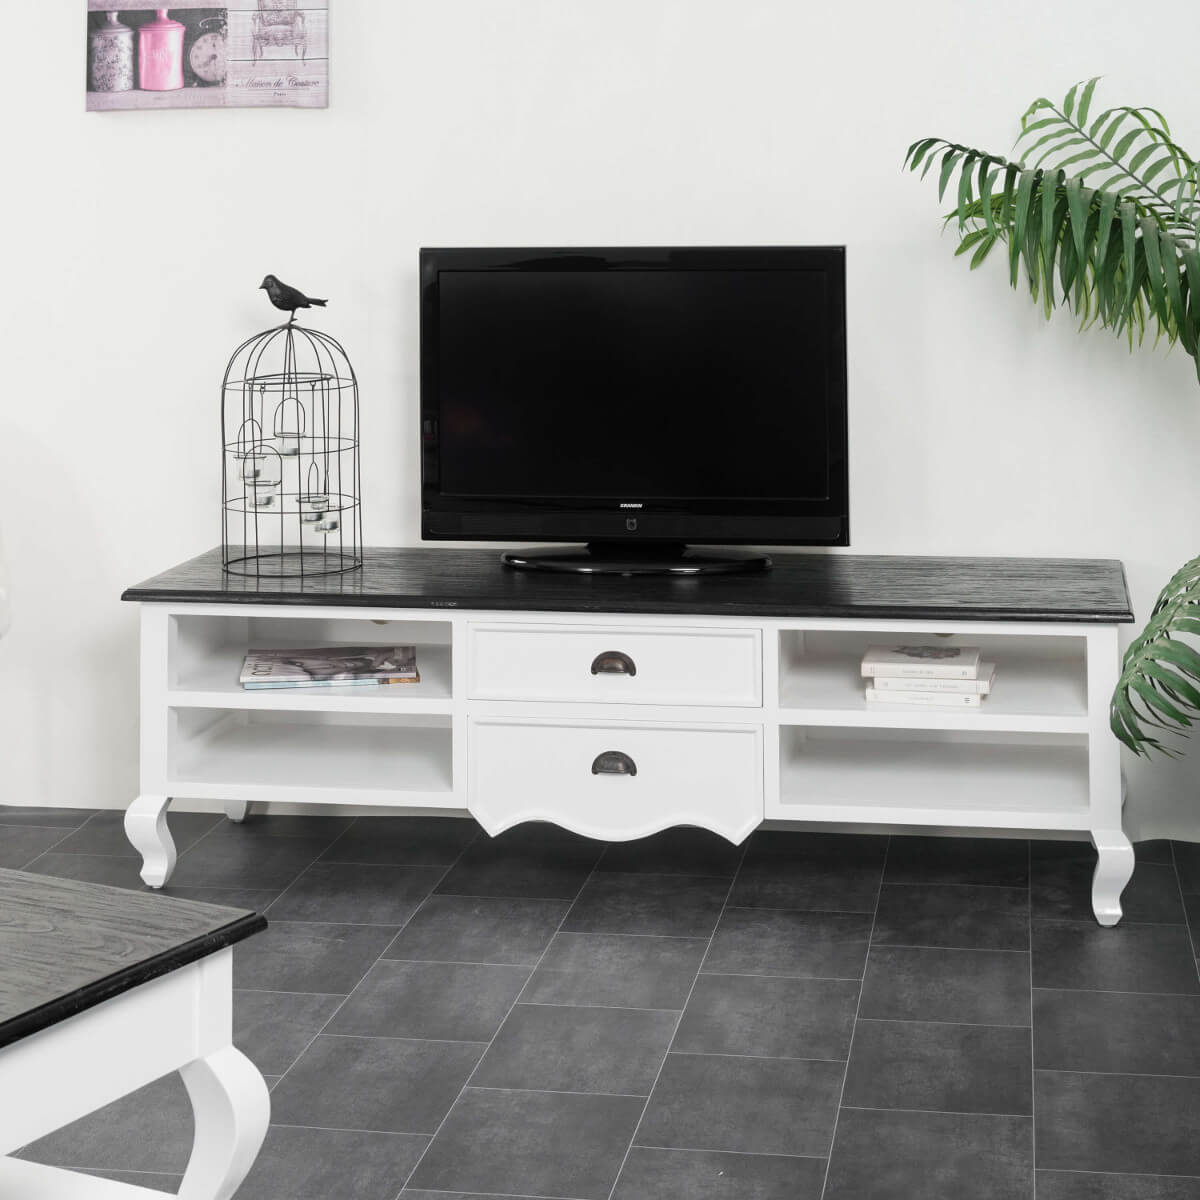 Meuble tv baroque meuble tv acajou blanc rectangle - Meuble tv style baroque ...